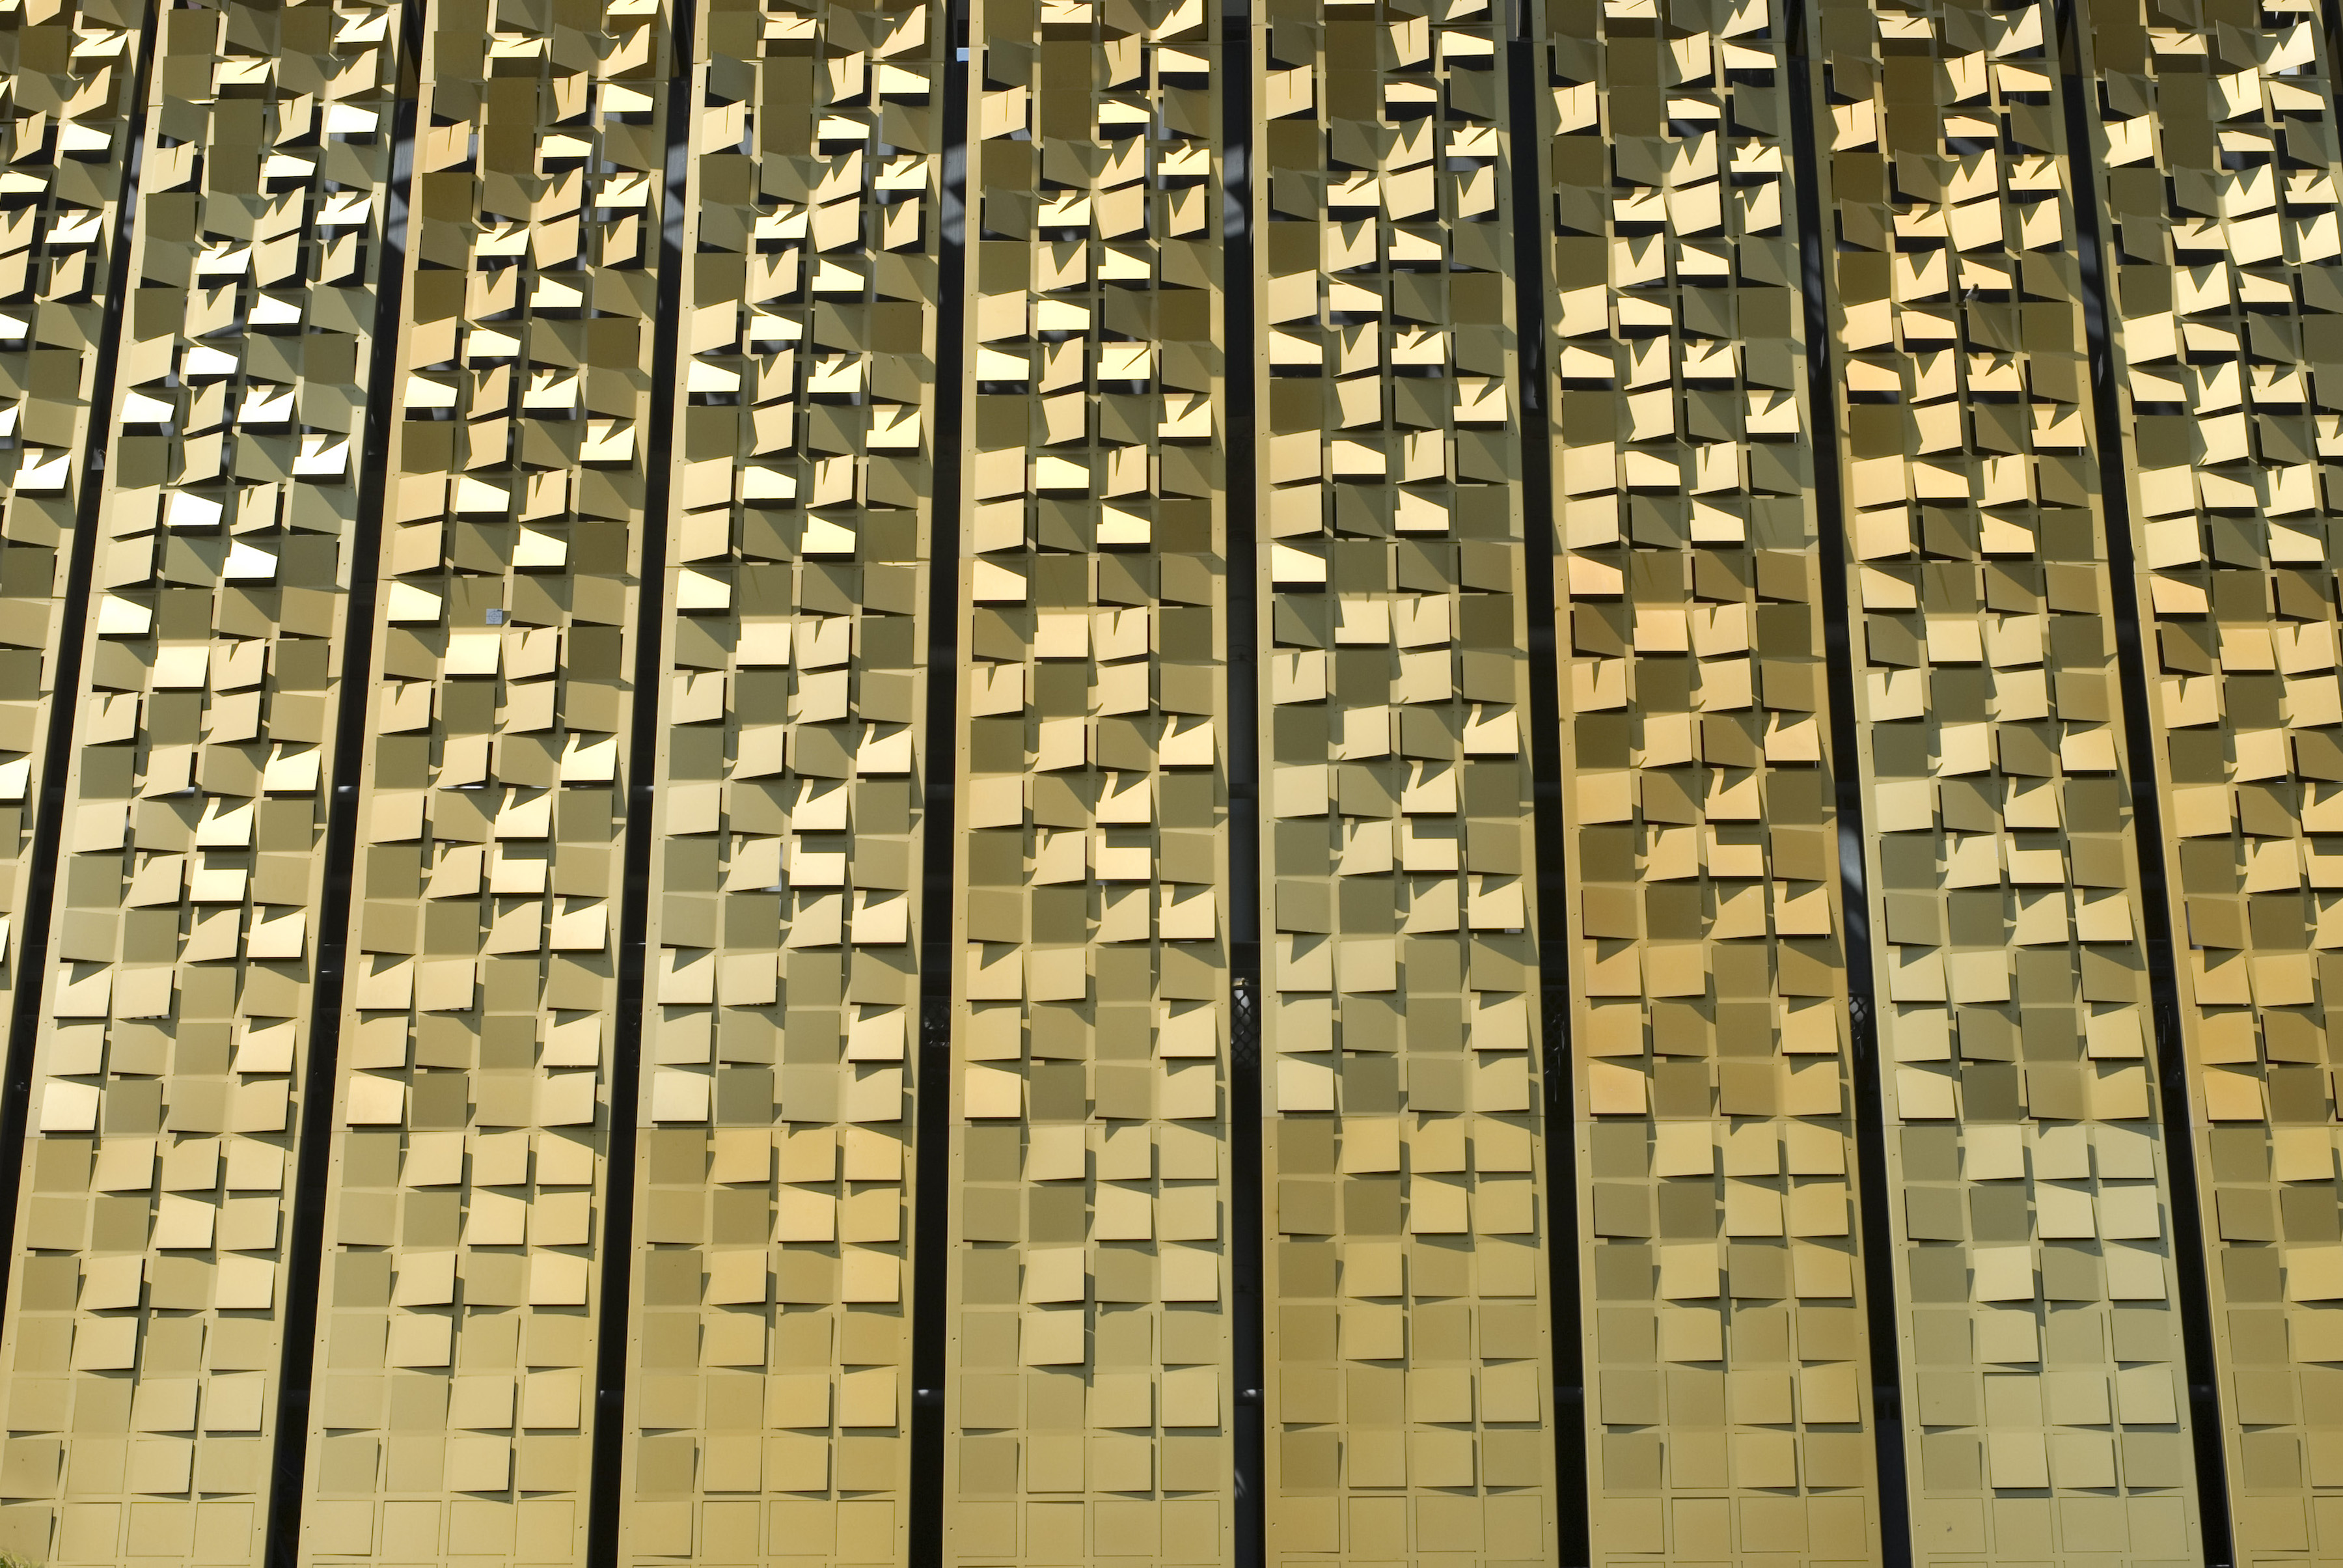 Architecutral metal cladding in a gold colour creates an interesting texture or backdrop